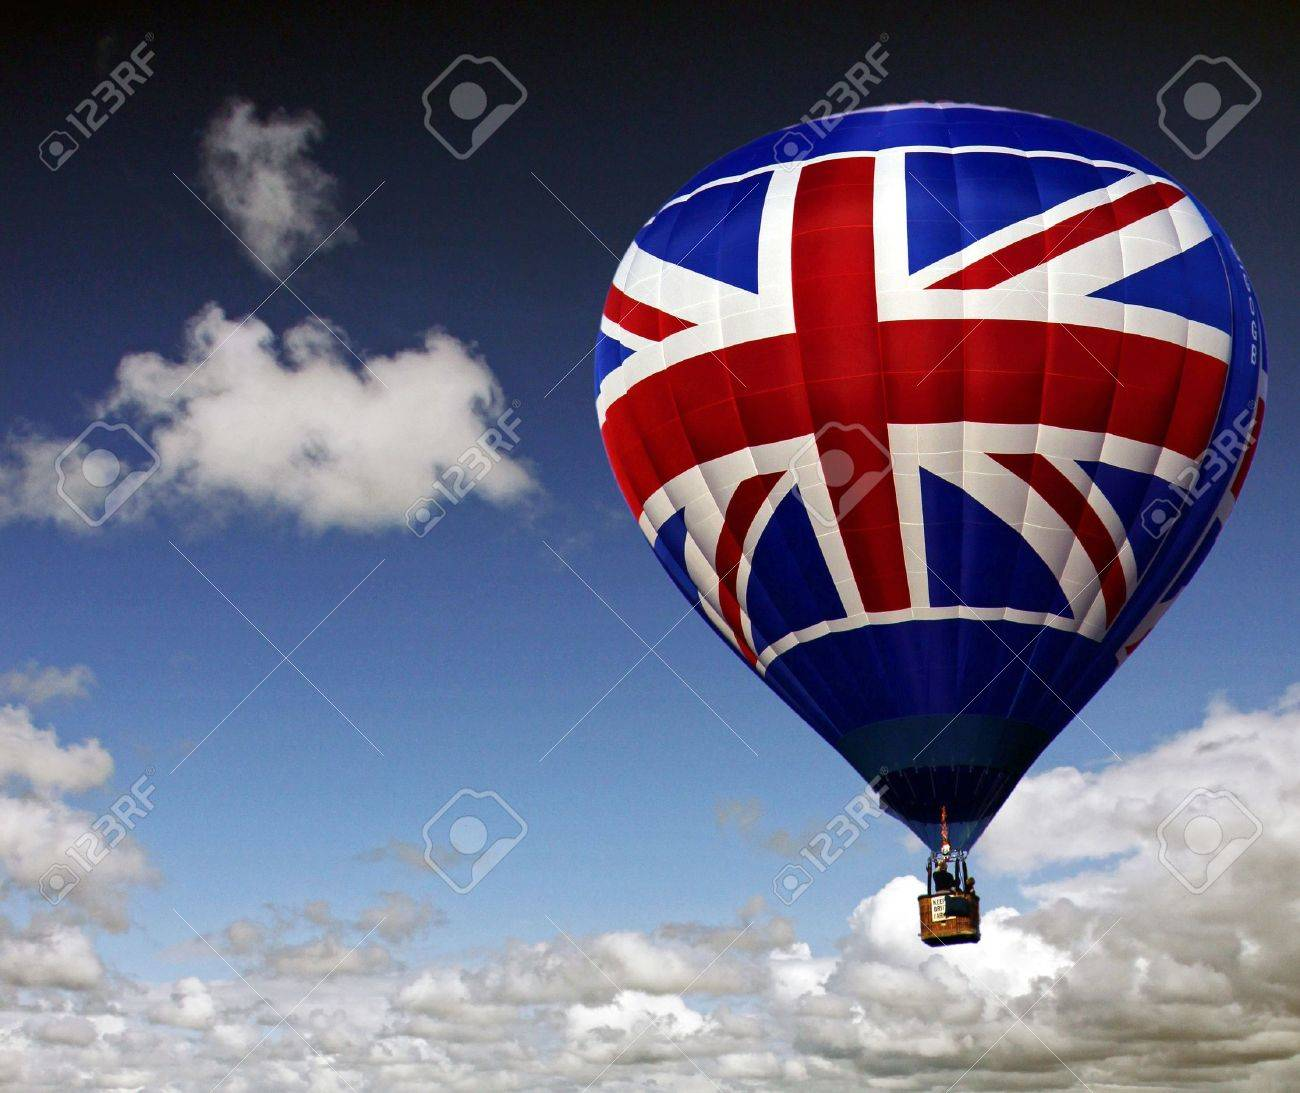 Colouful red white and blue hot air balloon rising in a cloudy sky Stock Photo - 5708687